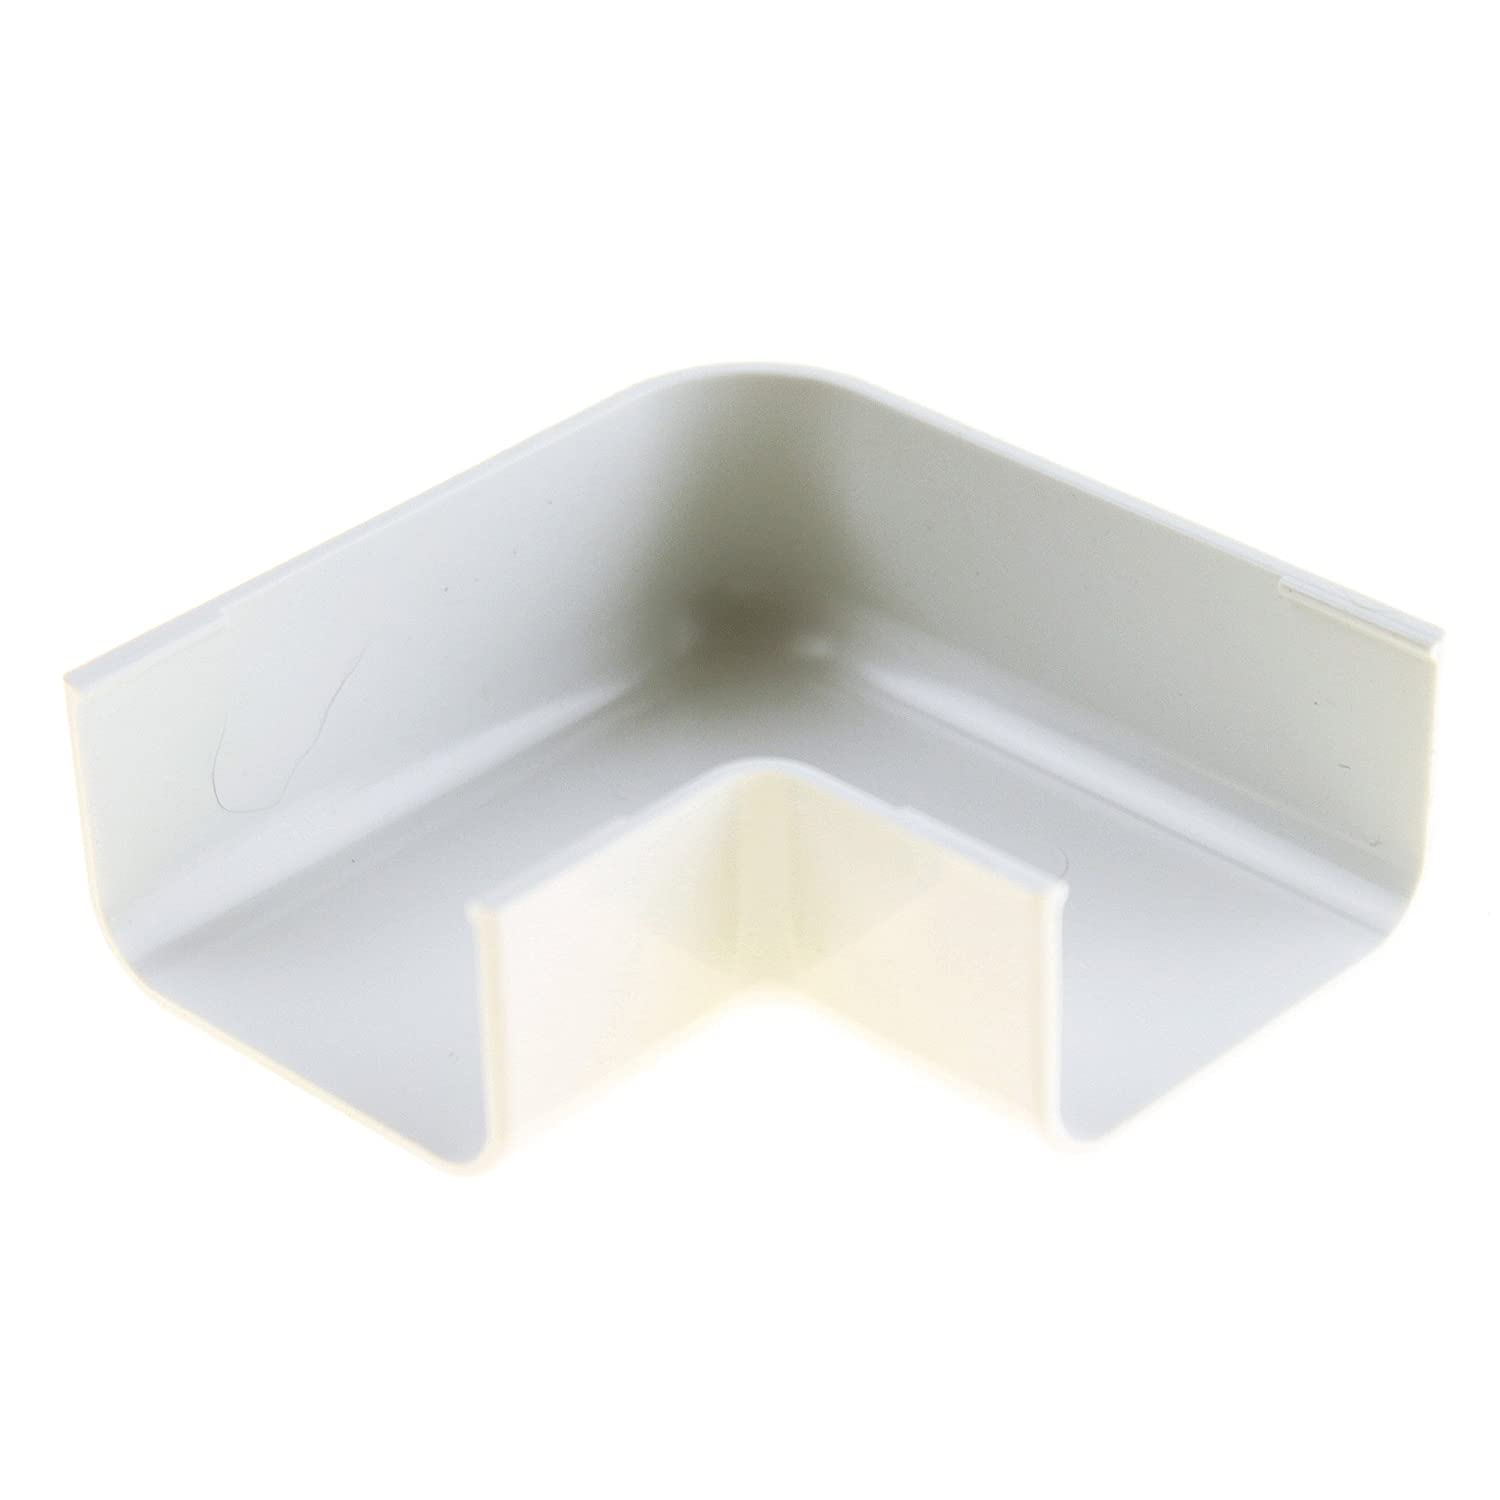 Pack of 10 Panduit RAF10WH-X Right Angle Fitting for LD10 Raceway White ABS